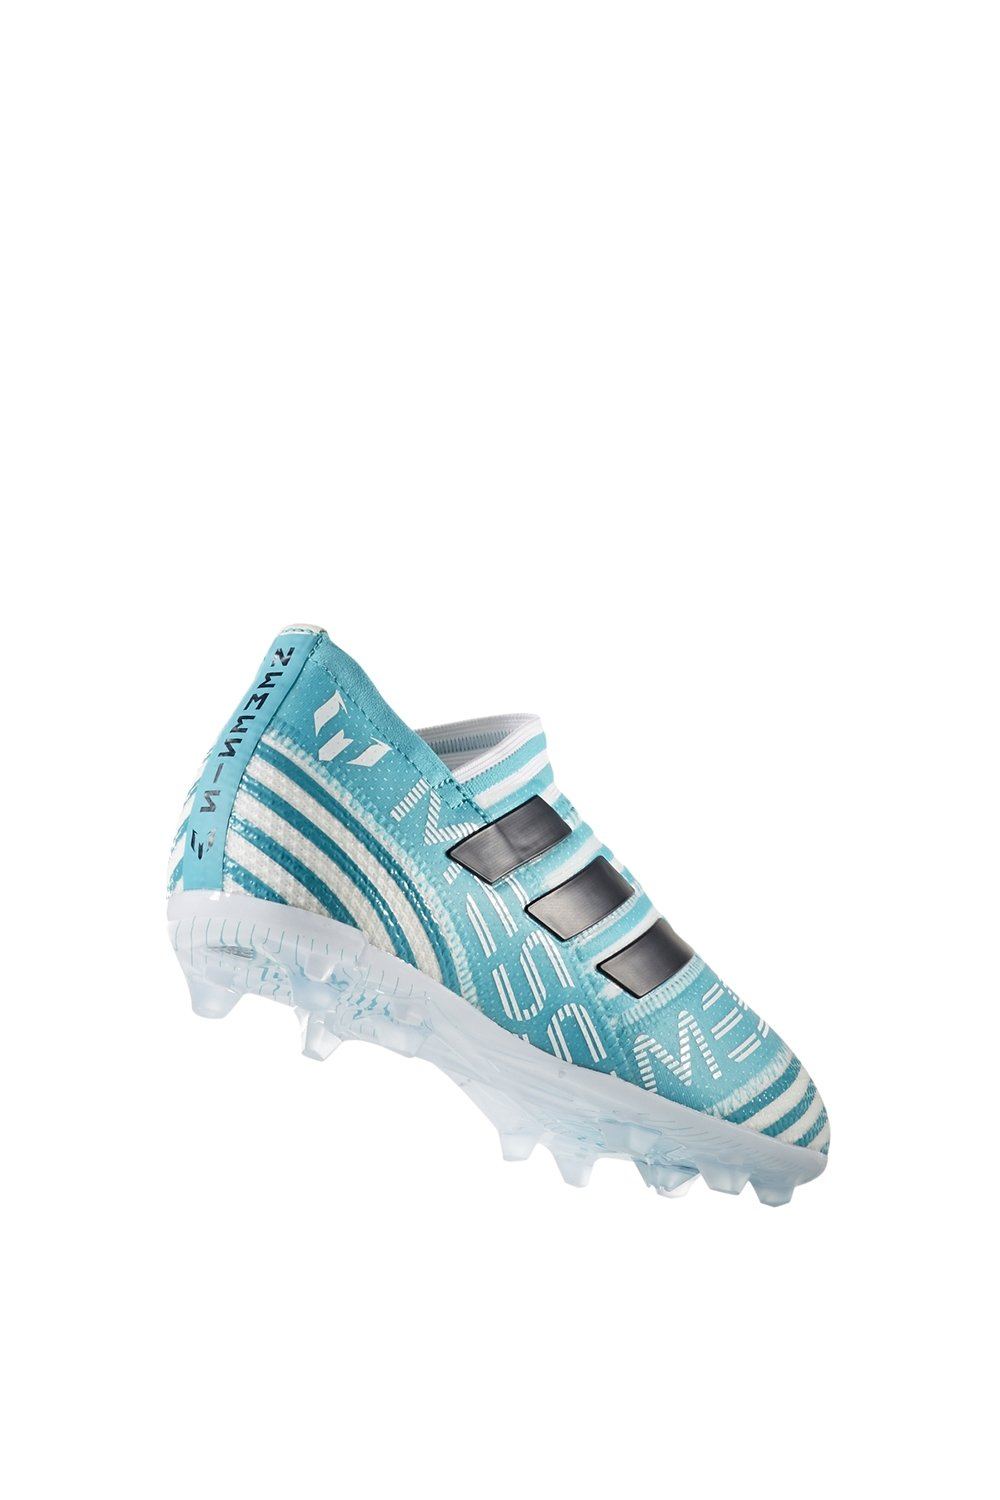 9c49b456dc1 Youth Nemeziz Messi 17+ 360Agility FG by Adidas Usa at Gazelle ...